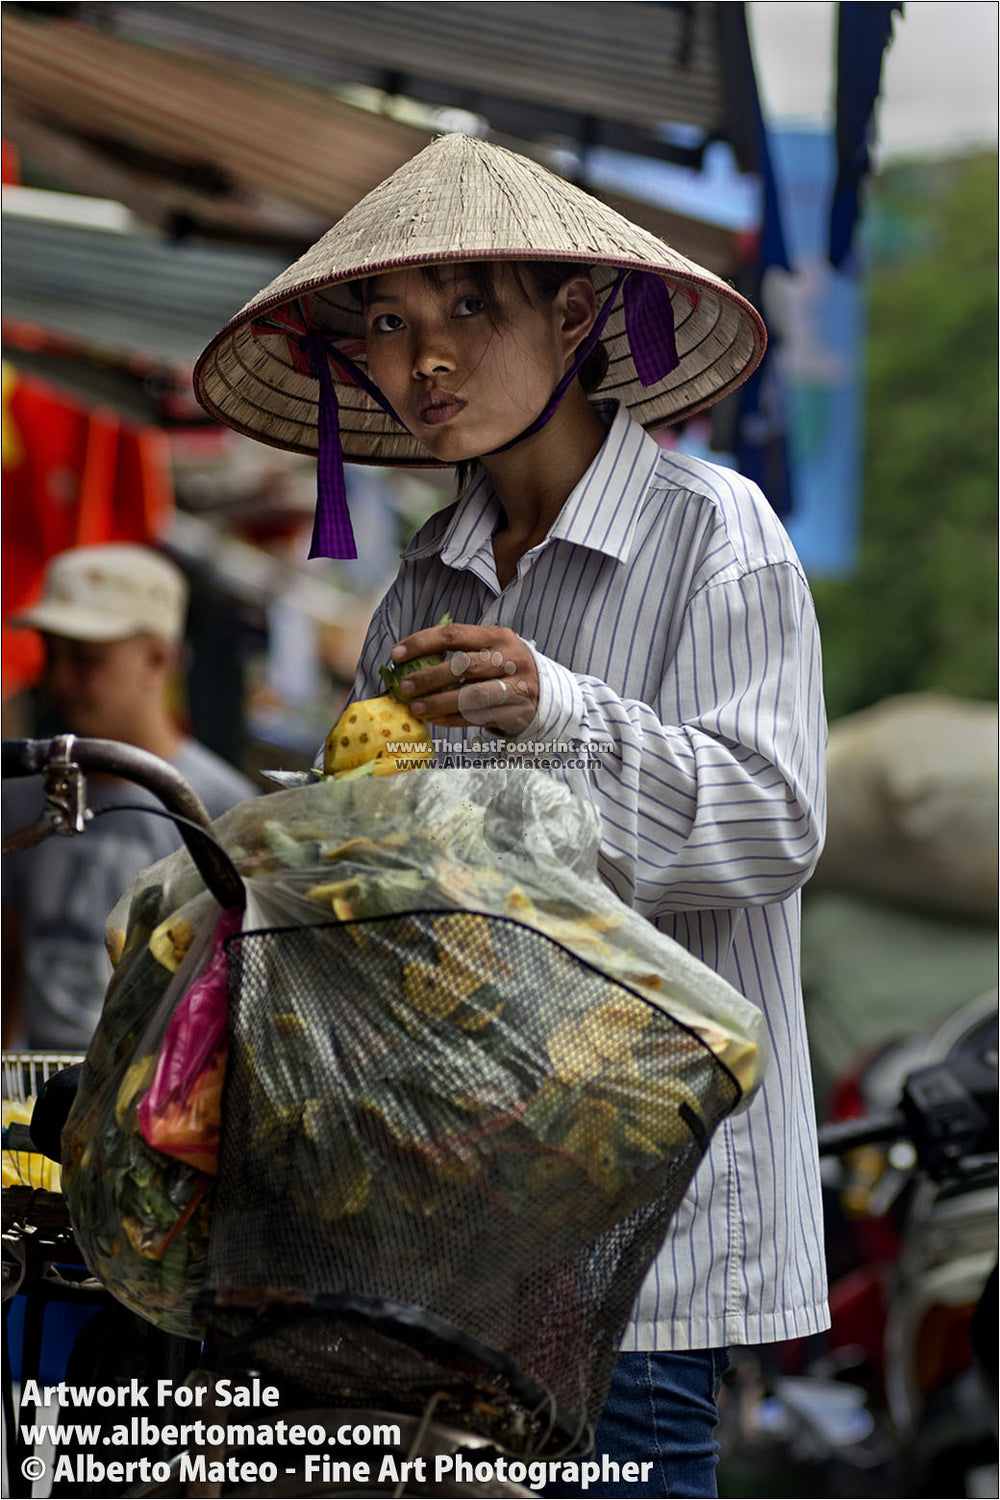 Girl selling pineapples, Hanoi, Vietnam. | Open Edition Fine Art Print.